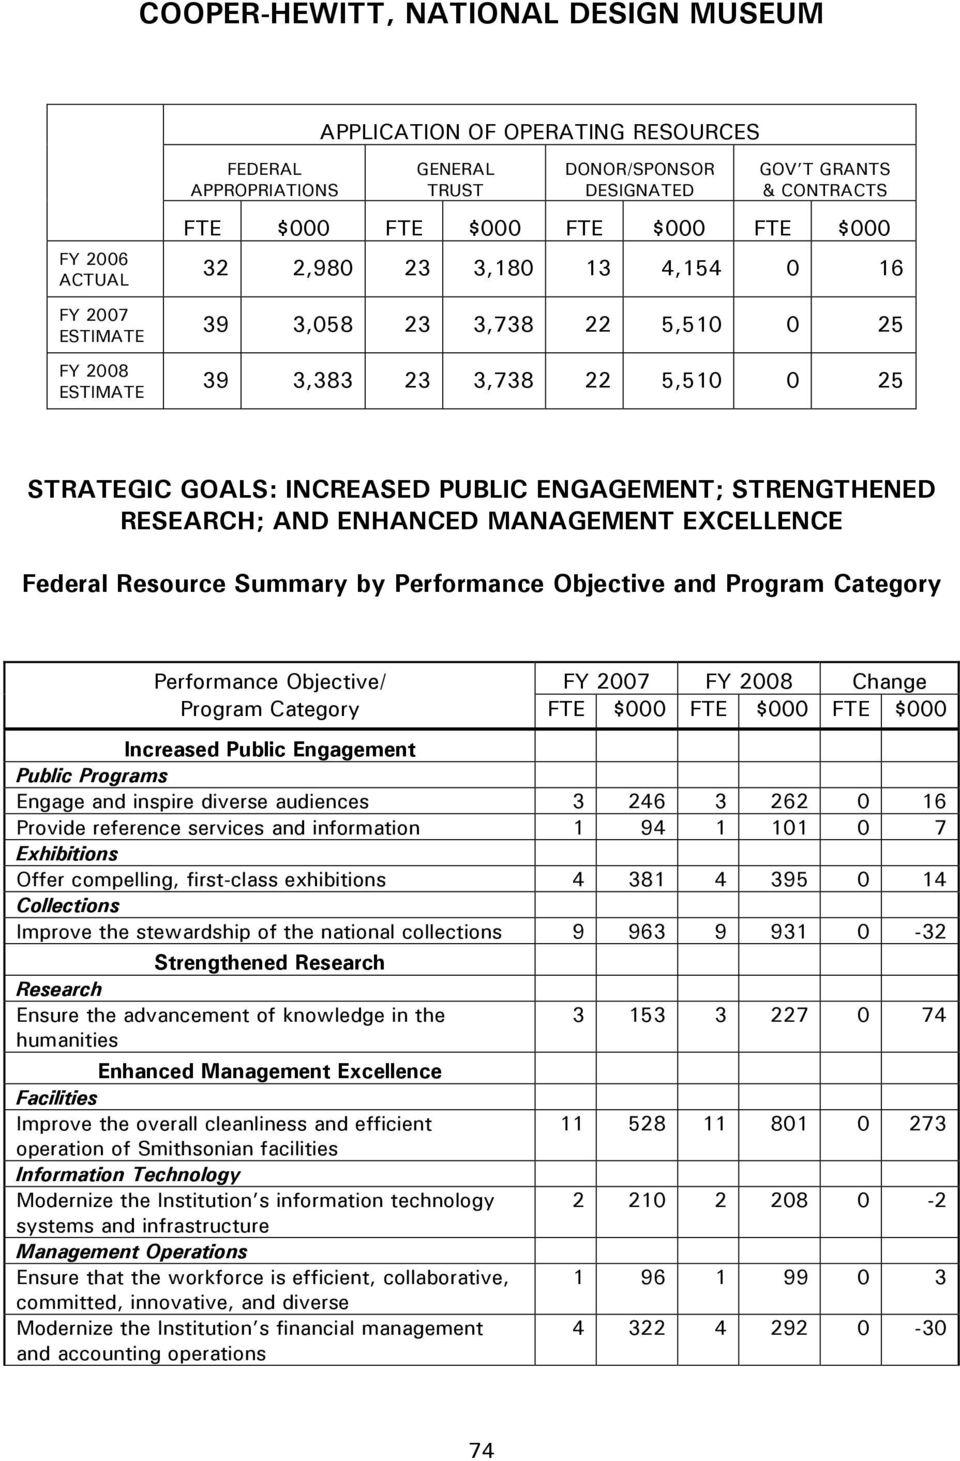 STRENGTHENED RESEARCH; AND ENHANCED MANAGEMENT EXCELLENCE Federal Resource Summary by Performance Objective and Program Category Performance Objective/ FY 2007 FY 2008 Change Program Category FTE